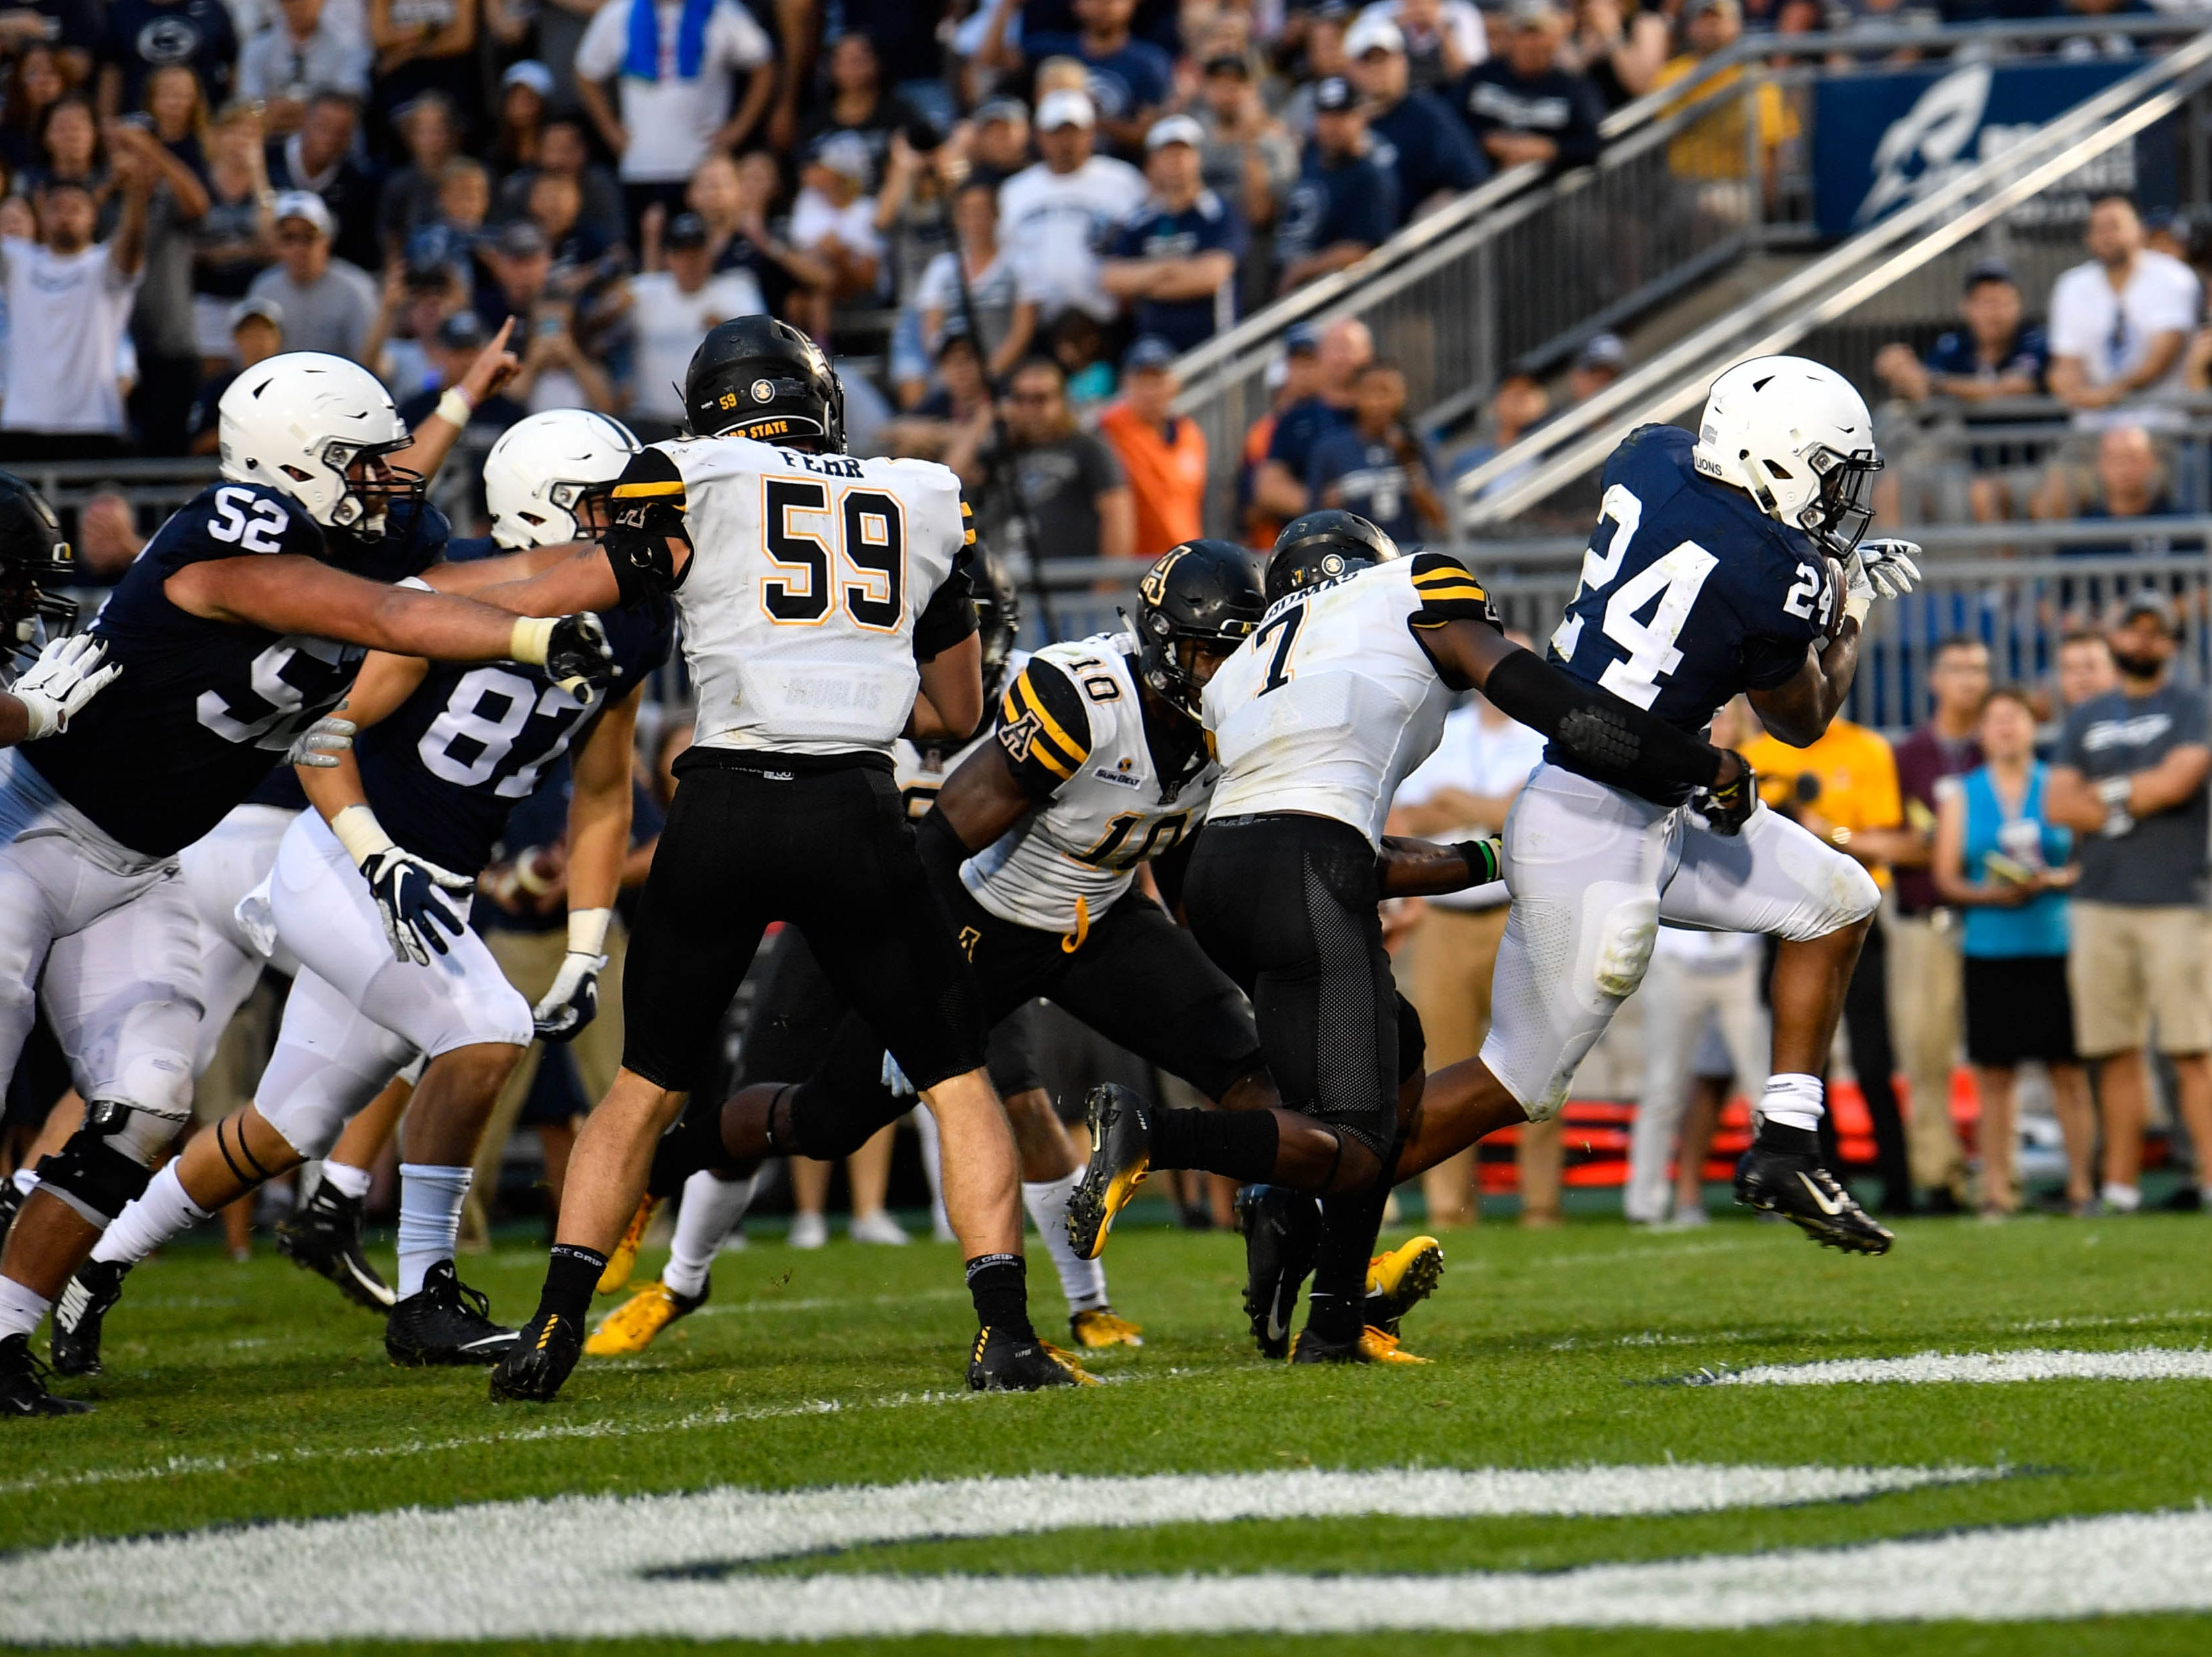 Miles Sanders (24) breaks free on the carry against Appalachian State on September 1, 2018.